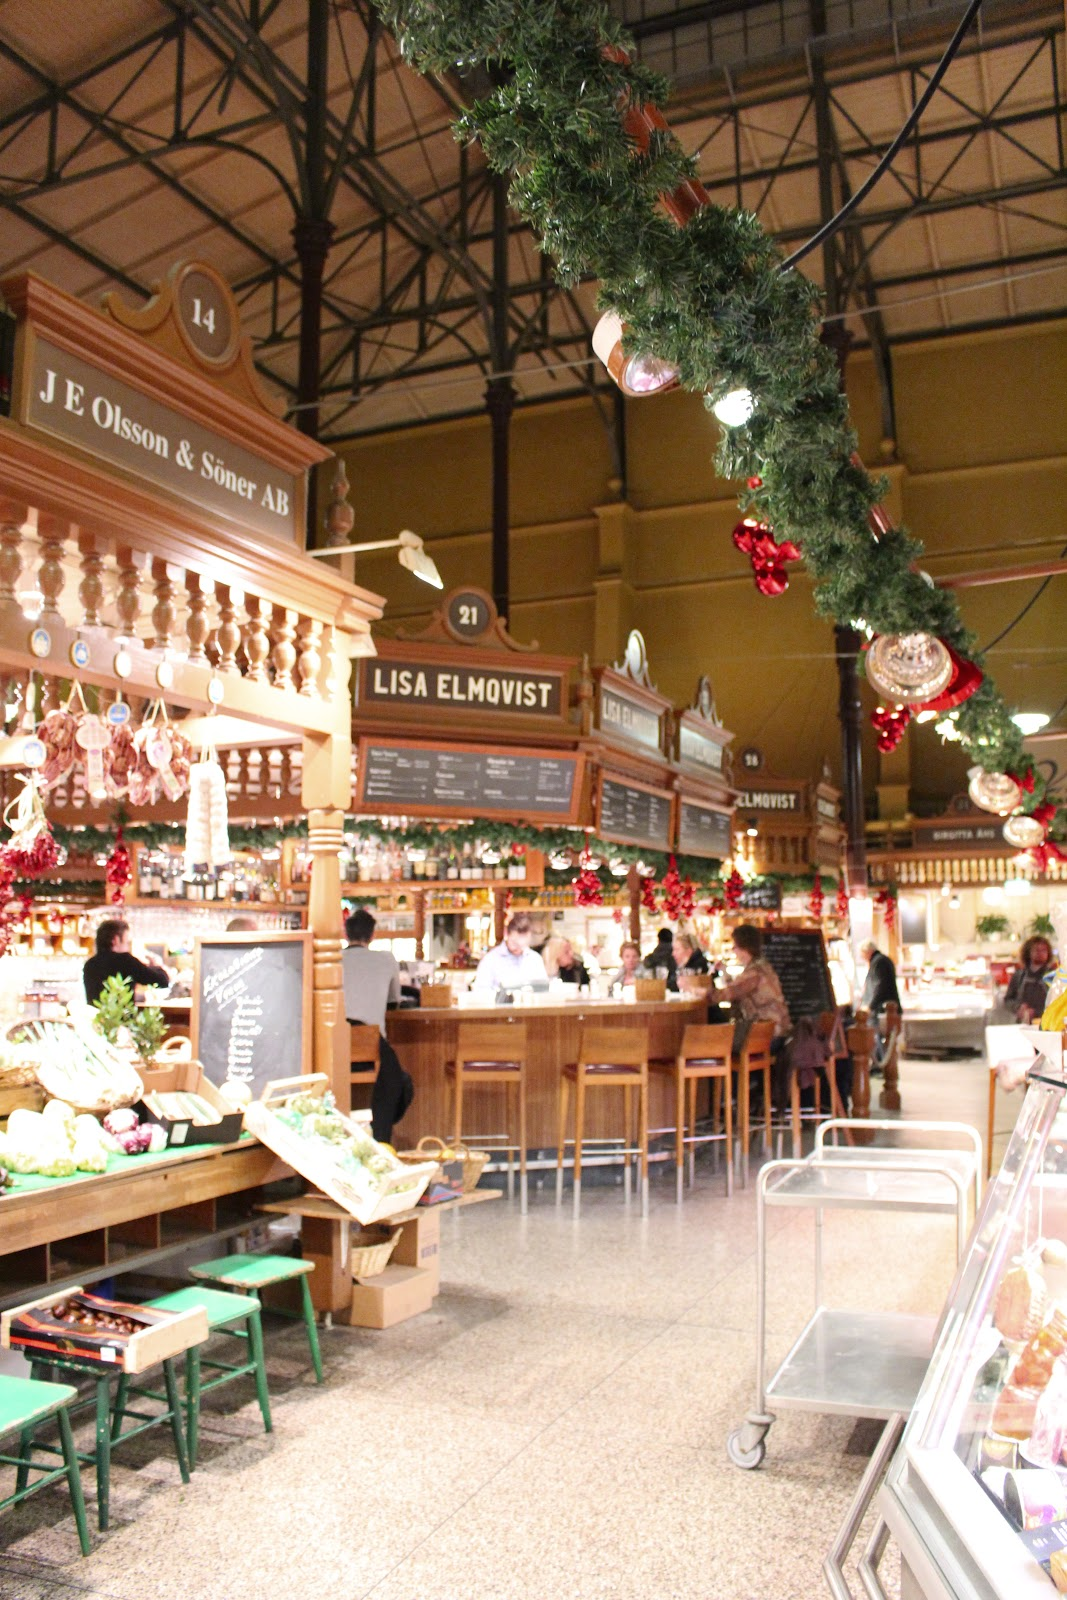 Best coffee & fika in stockholm: Ostermalms Saluhall